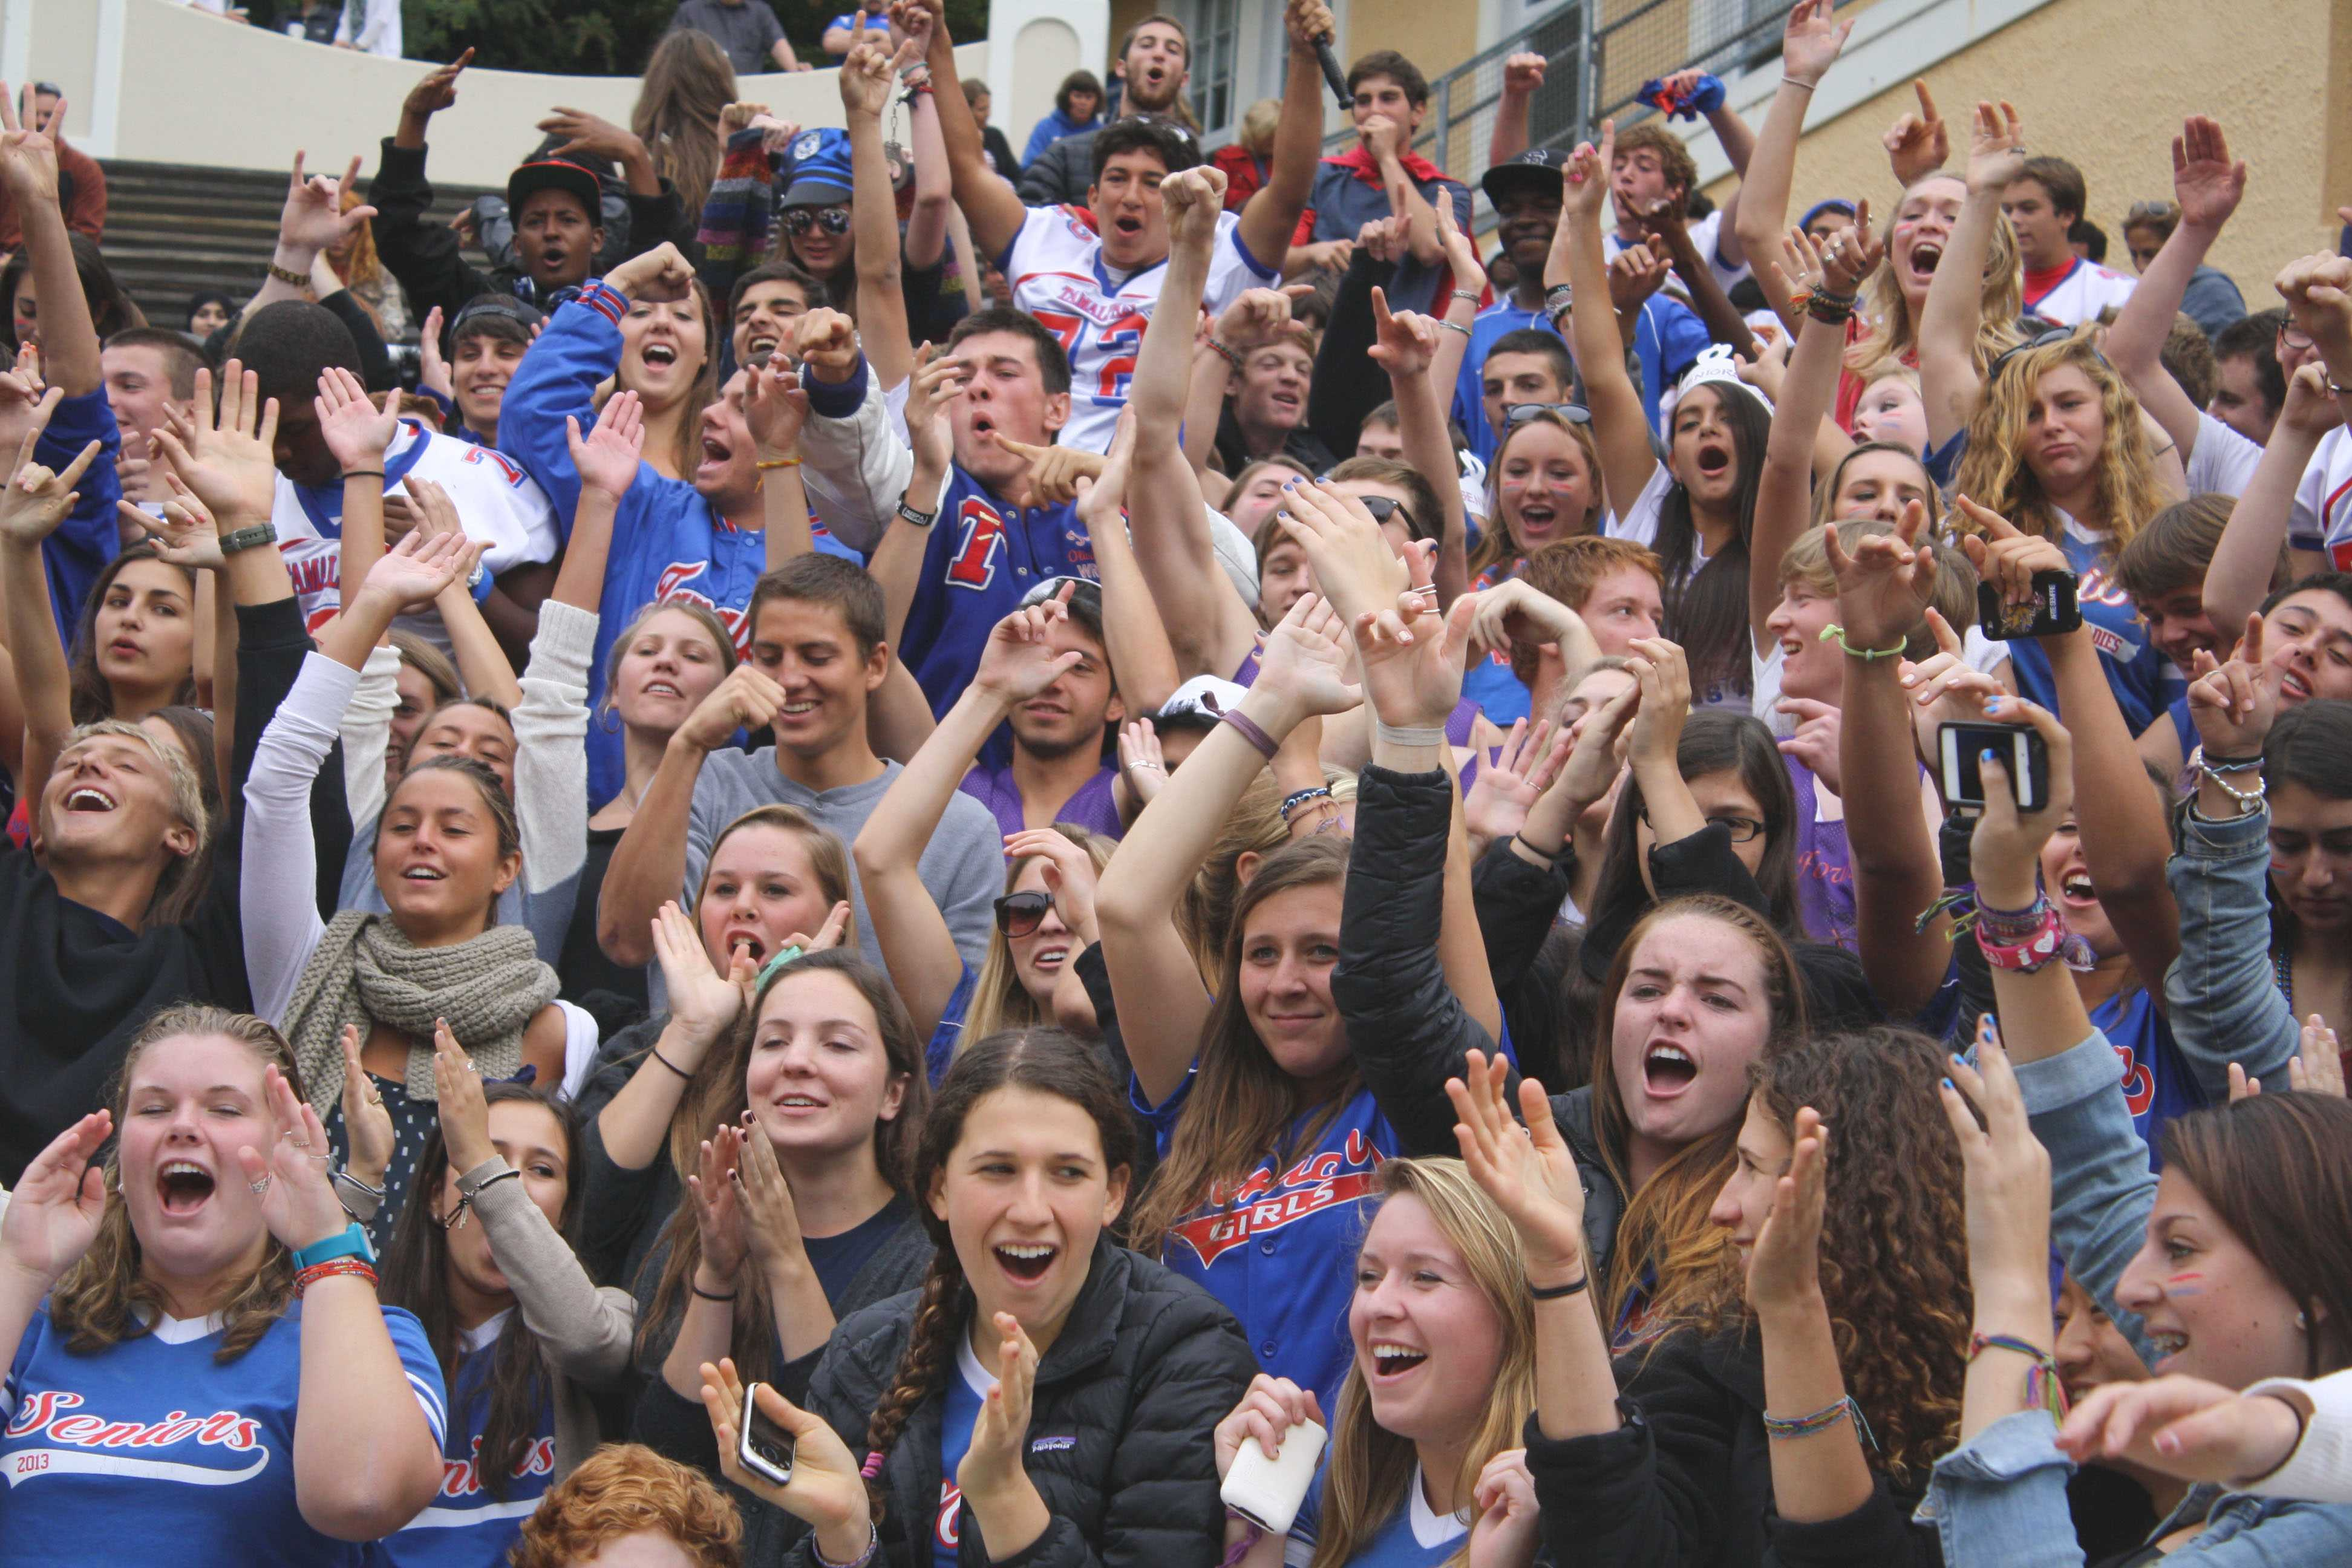 The senior class of 2013 shows off their enthusiasm and spirit.